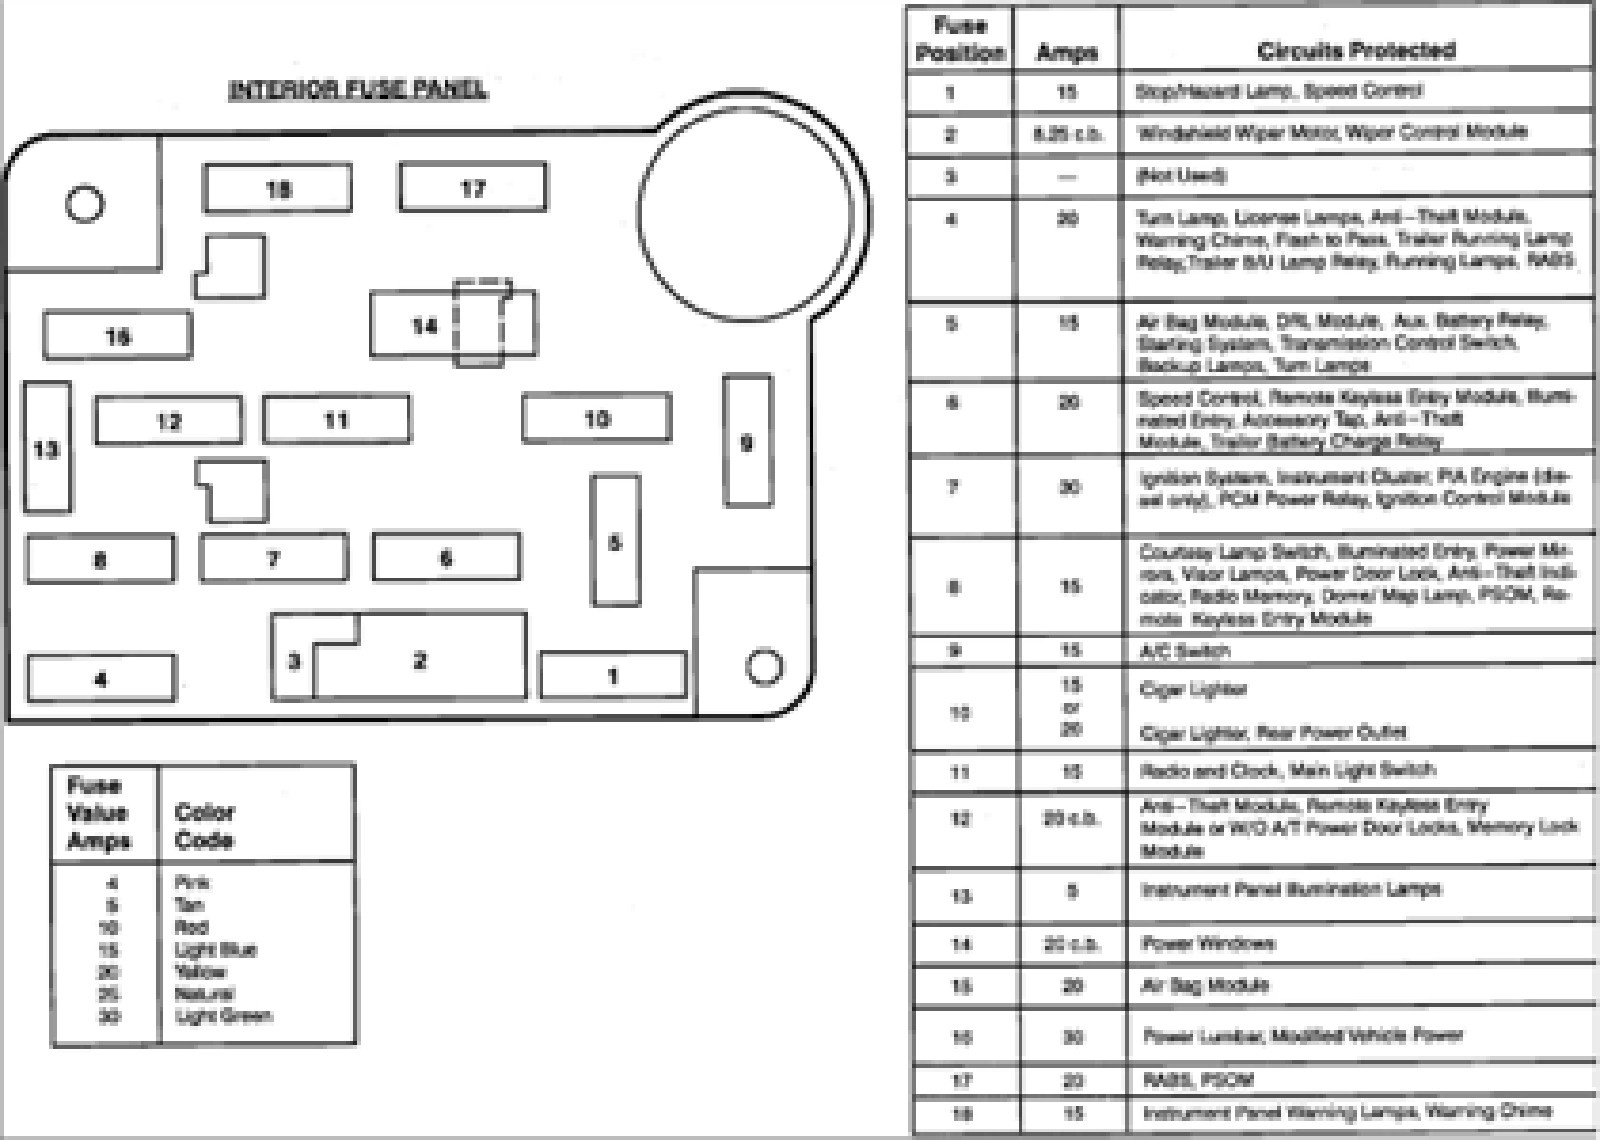 2005 Ford Crown Victoria Fuse Box Layout Wiring Library Vic 1997 Detailed Schematics Diagram Rh Mrskindsclass Com